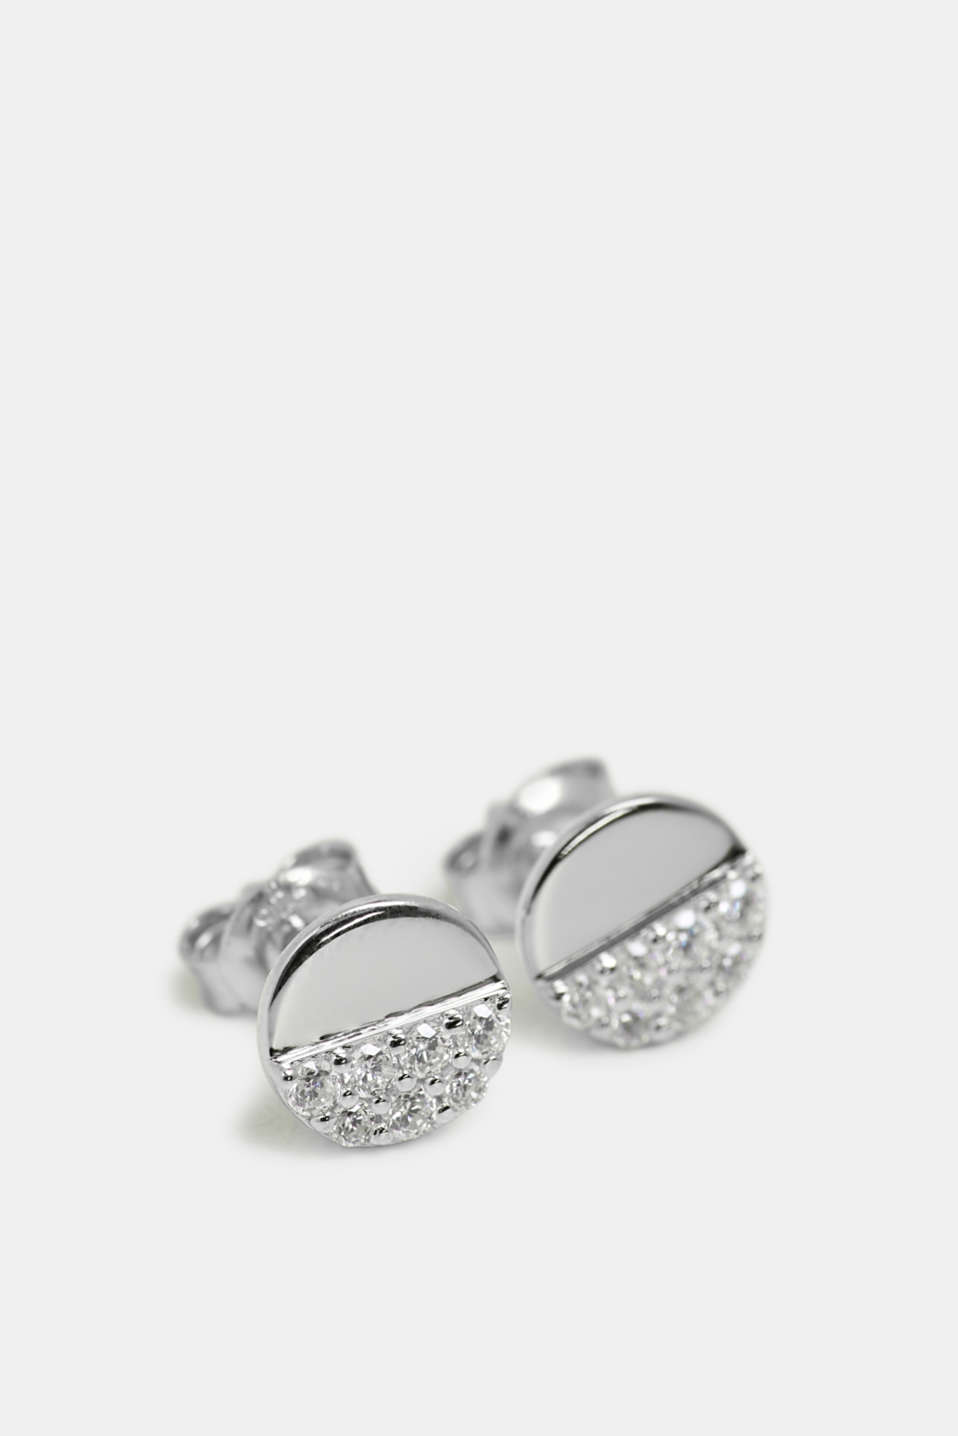 Esprit - Stud earrings with a zirconia trim in sterling silver